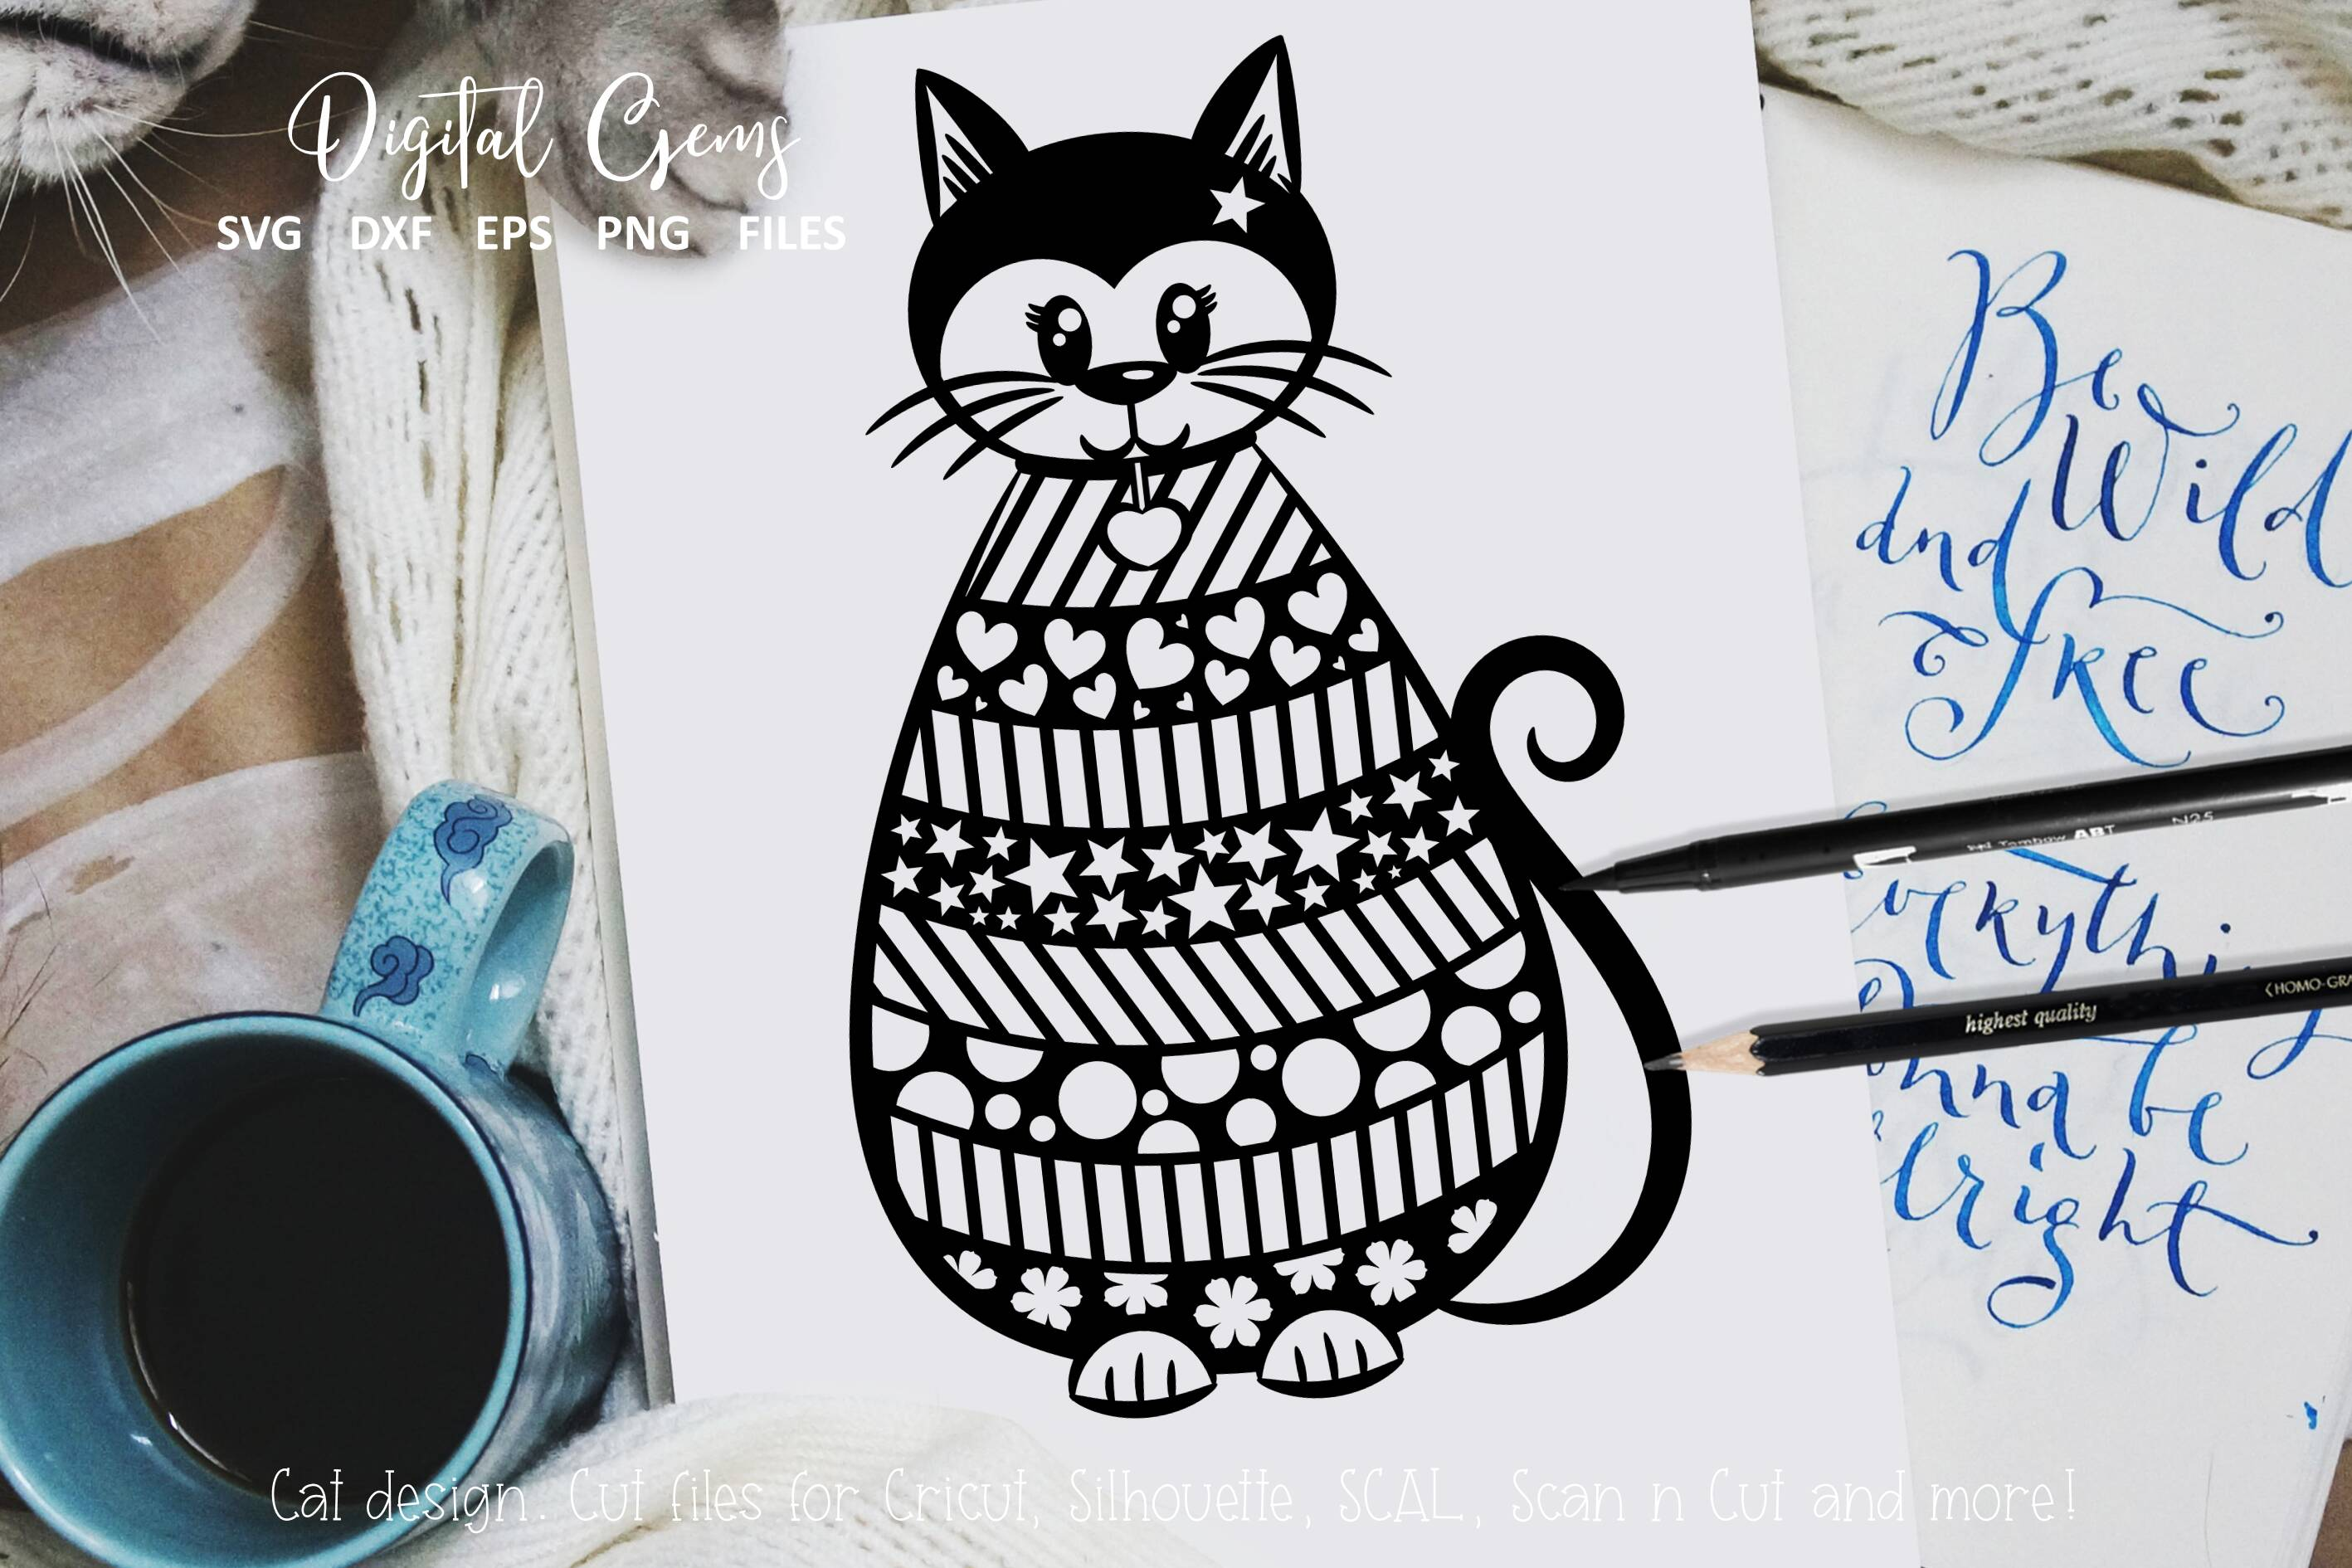 Download Free Cat Design Graphic By Digital Gems Creative Fabrica for Cricut Explore, Silhouette and other cutting machines.